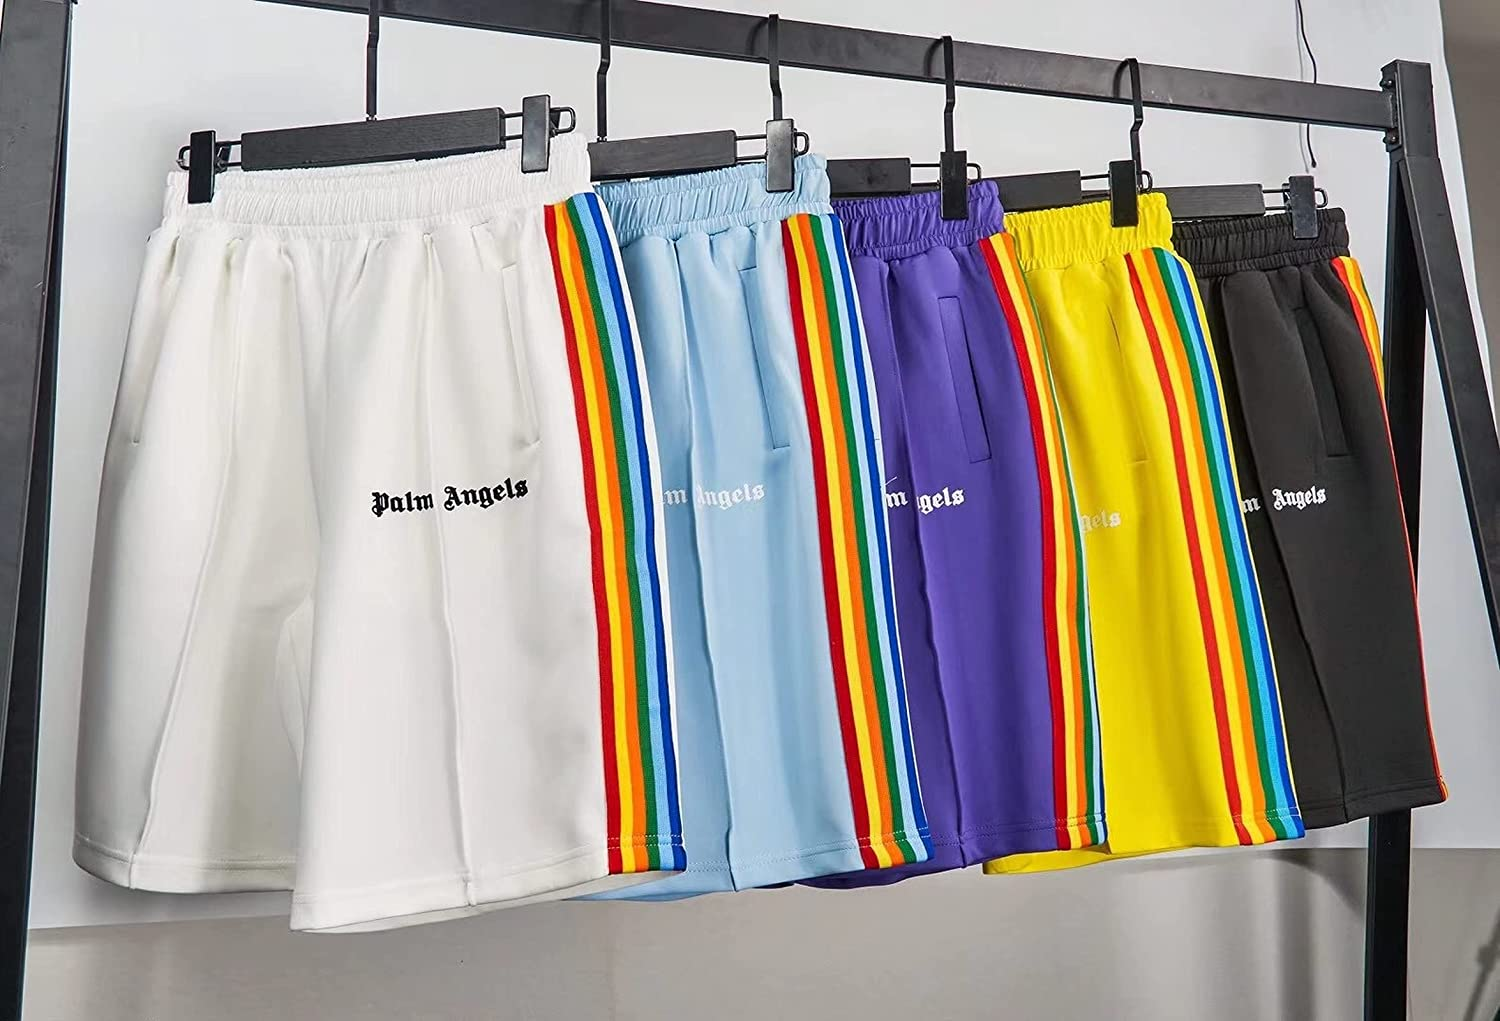 PA Angels Men's Shorts Rainbow Striped Casual Shorts Drawstring Elastic with Pockets for Unisex Classic Beach Pants